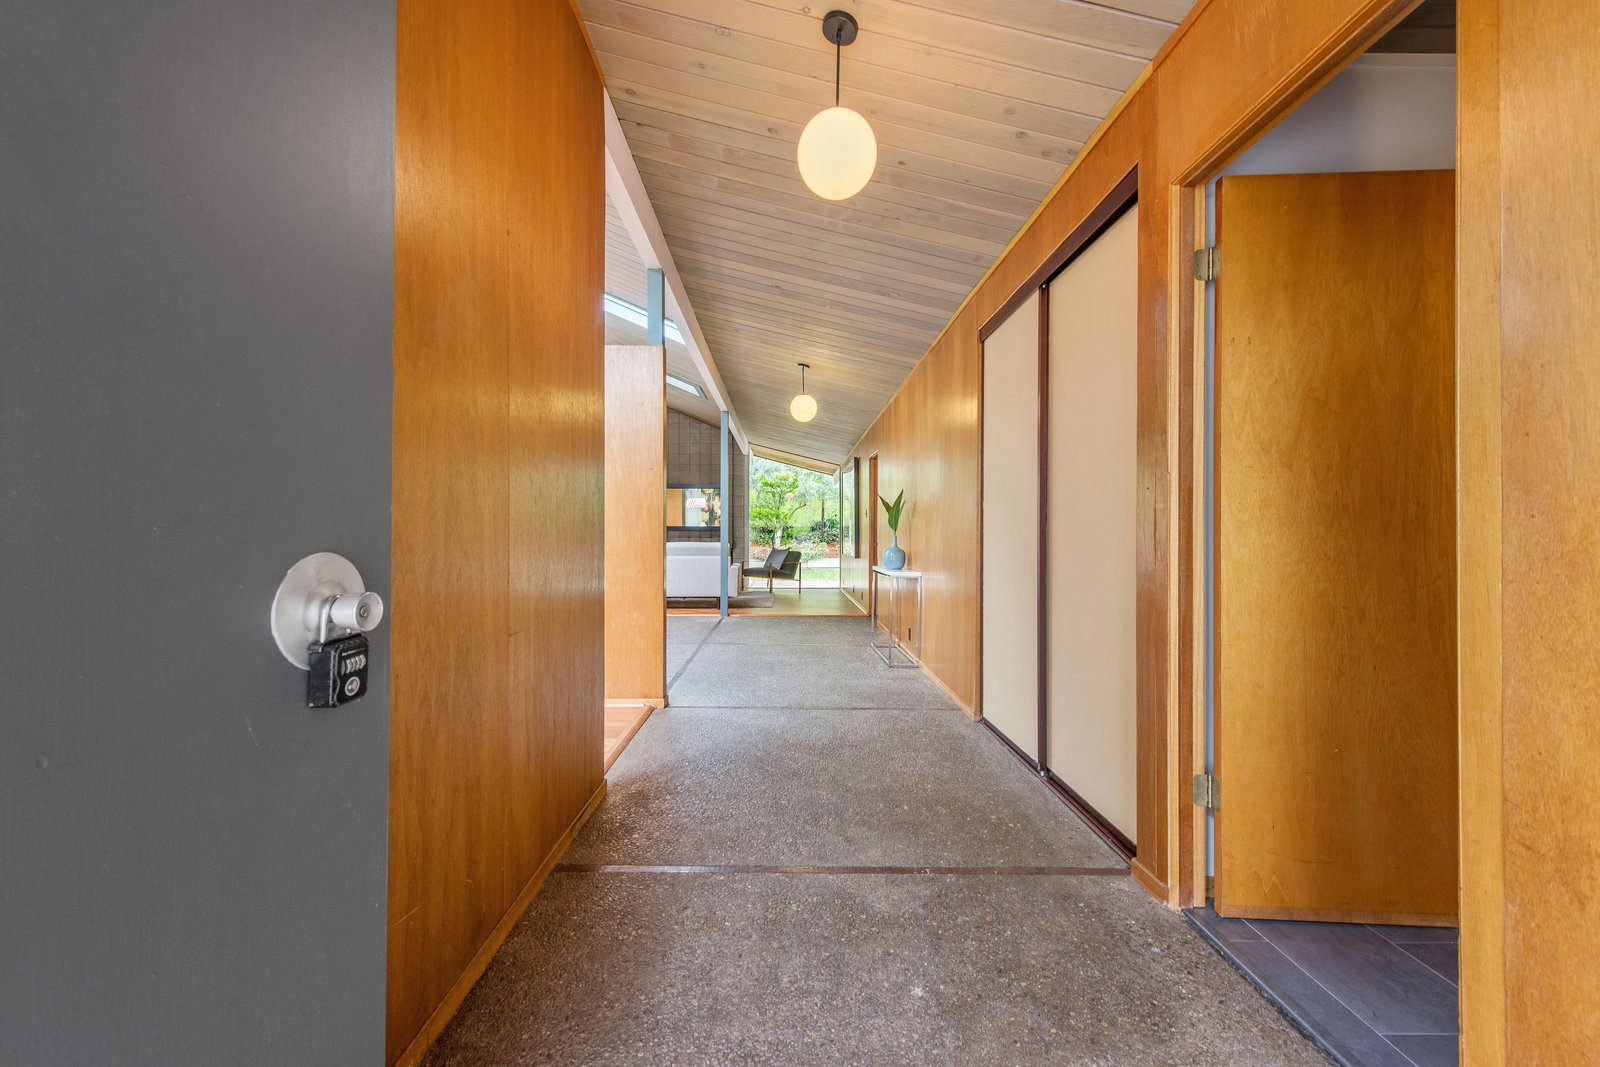 Hallway and Concrete Floor A corridor leads from the entrance to the open-plan living space. Note the original aggregate concrete flooring.     Photo 1 of 14 in Live Large in This Extra-Spacious Eichler That's Asking $1.38M